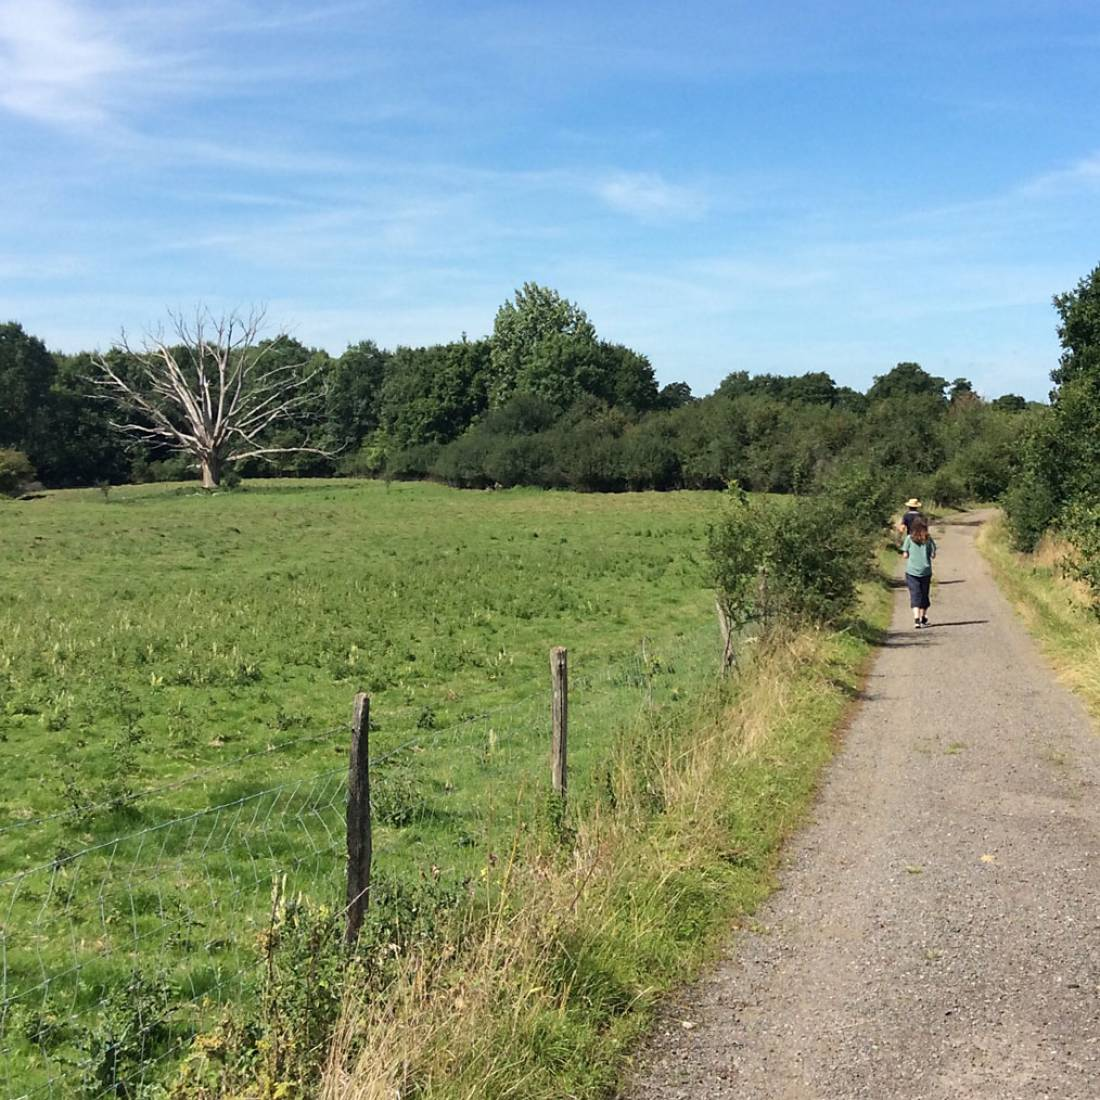 treking to the harvest, our manual harvest at Lodge Farm, pics = <a href='http://www.annbodkin.co.uk/' target='_blank'>Ann Bodkin</a> - 12:06pm&nbsp;13<sup>th</sup>&nbsp;Aug.&nbsp;'17